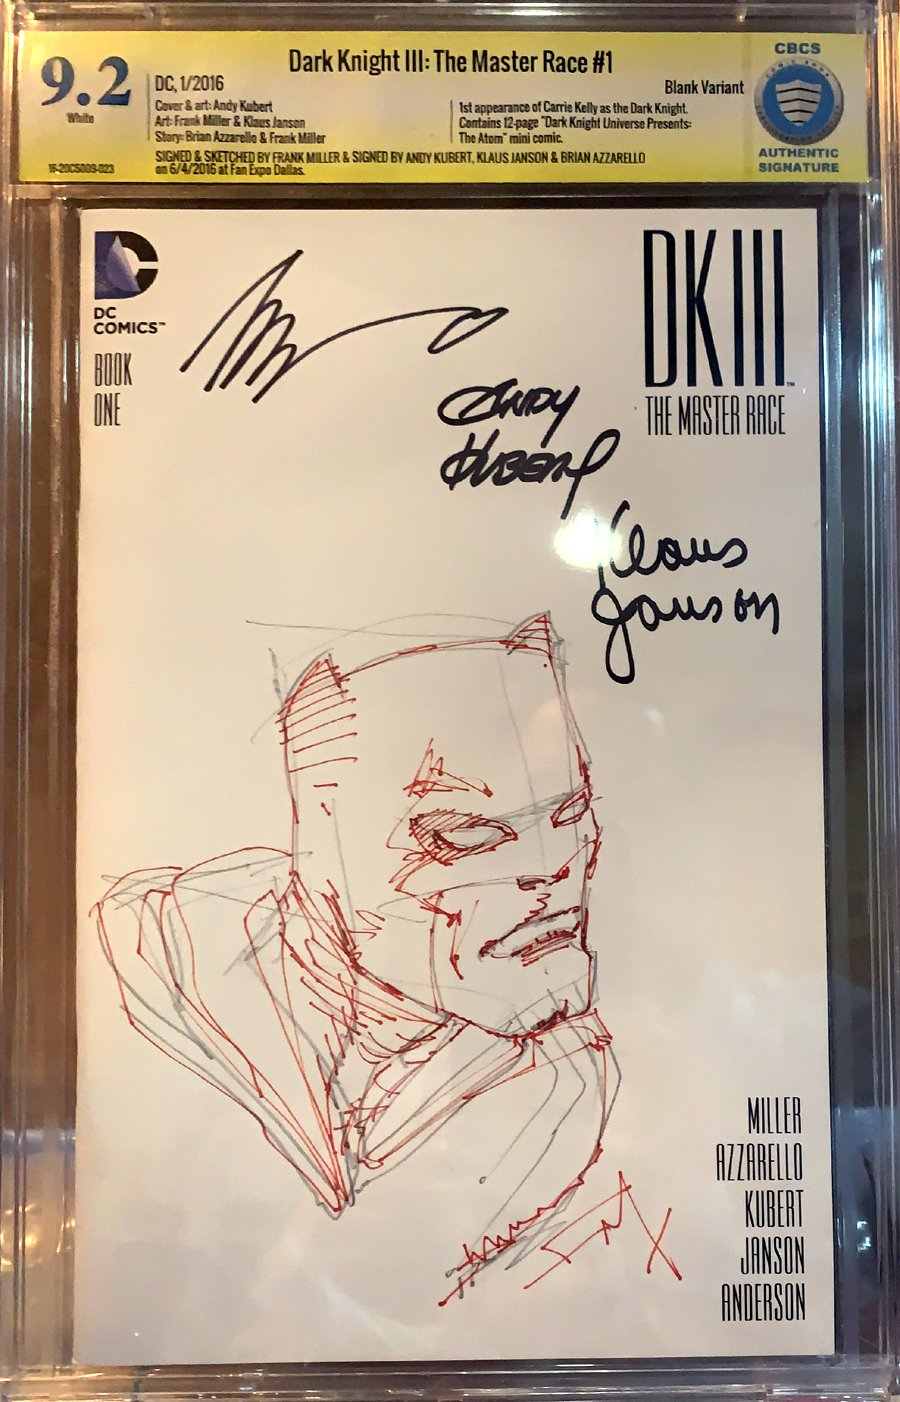 Dark Knight III: The Master Race #1 Frank Miller Sketch Cover (Penciled & Inked!)